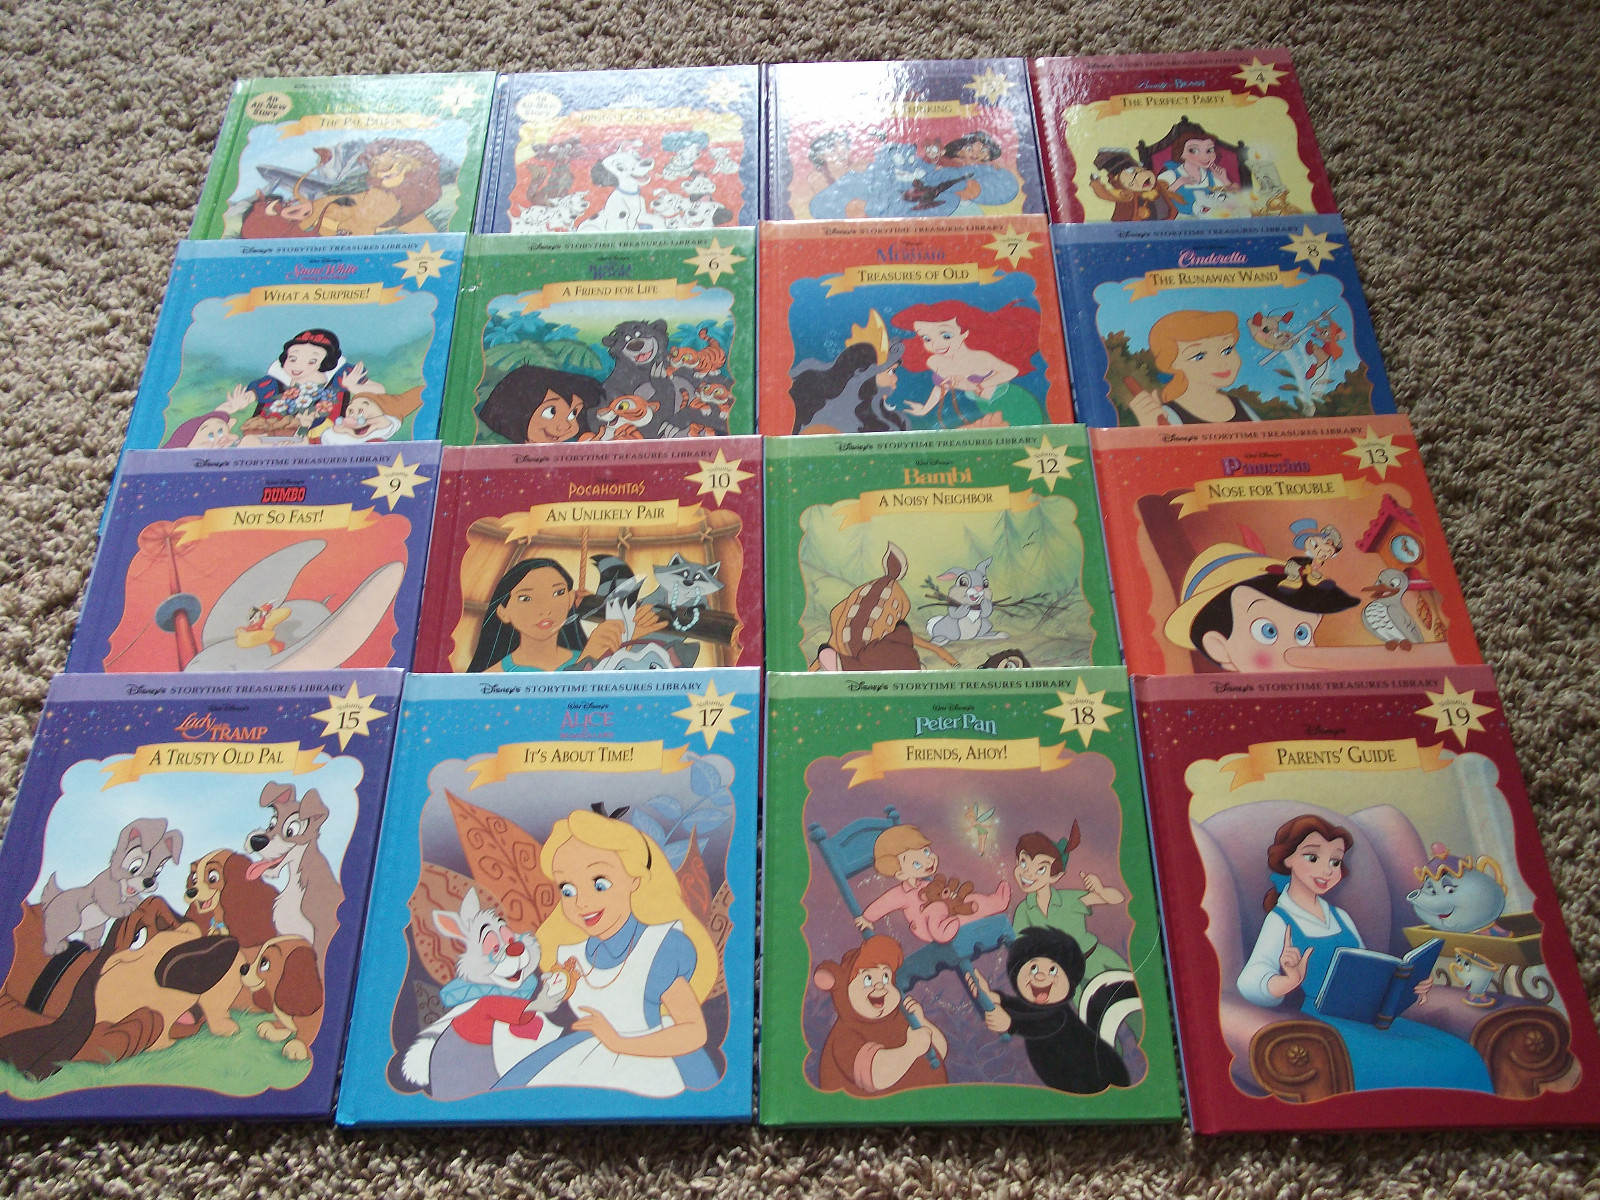 Disney S Storytime Treasures Library Disney Wiki